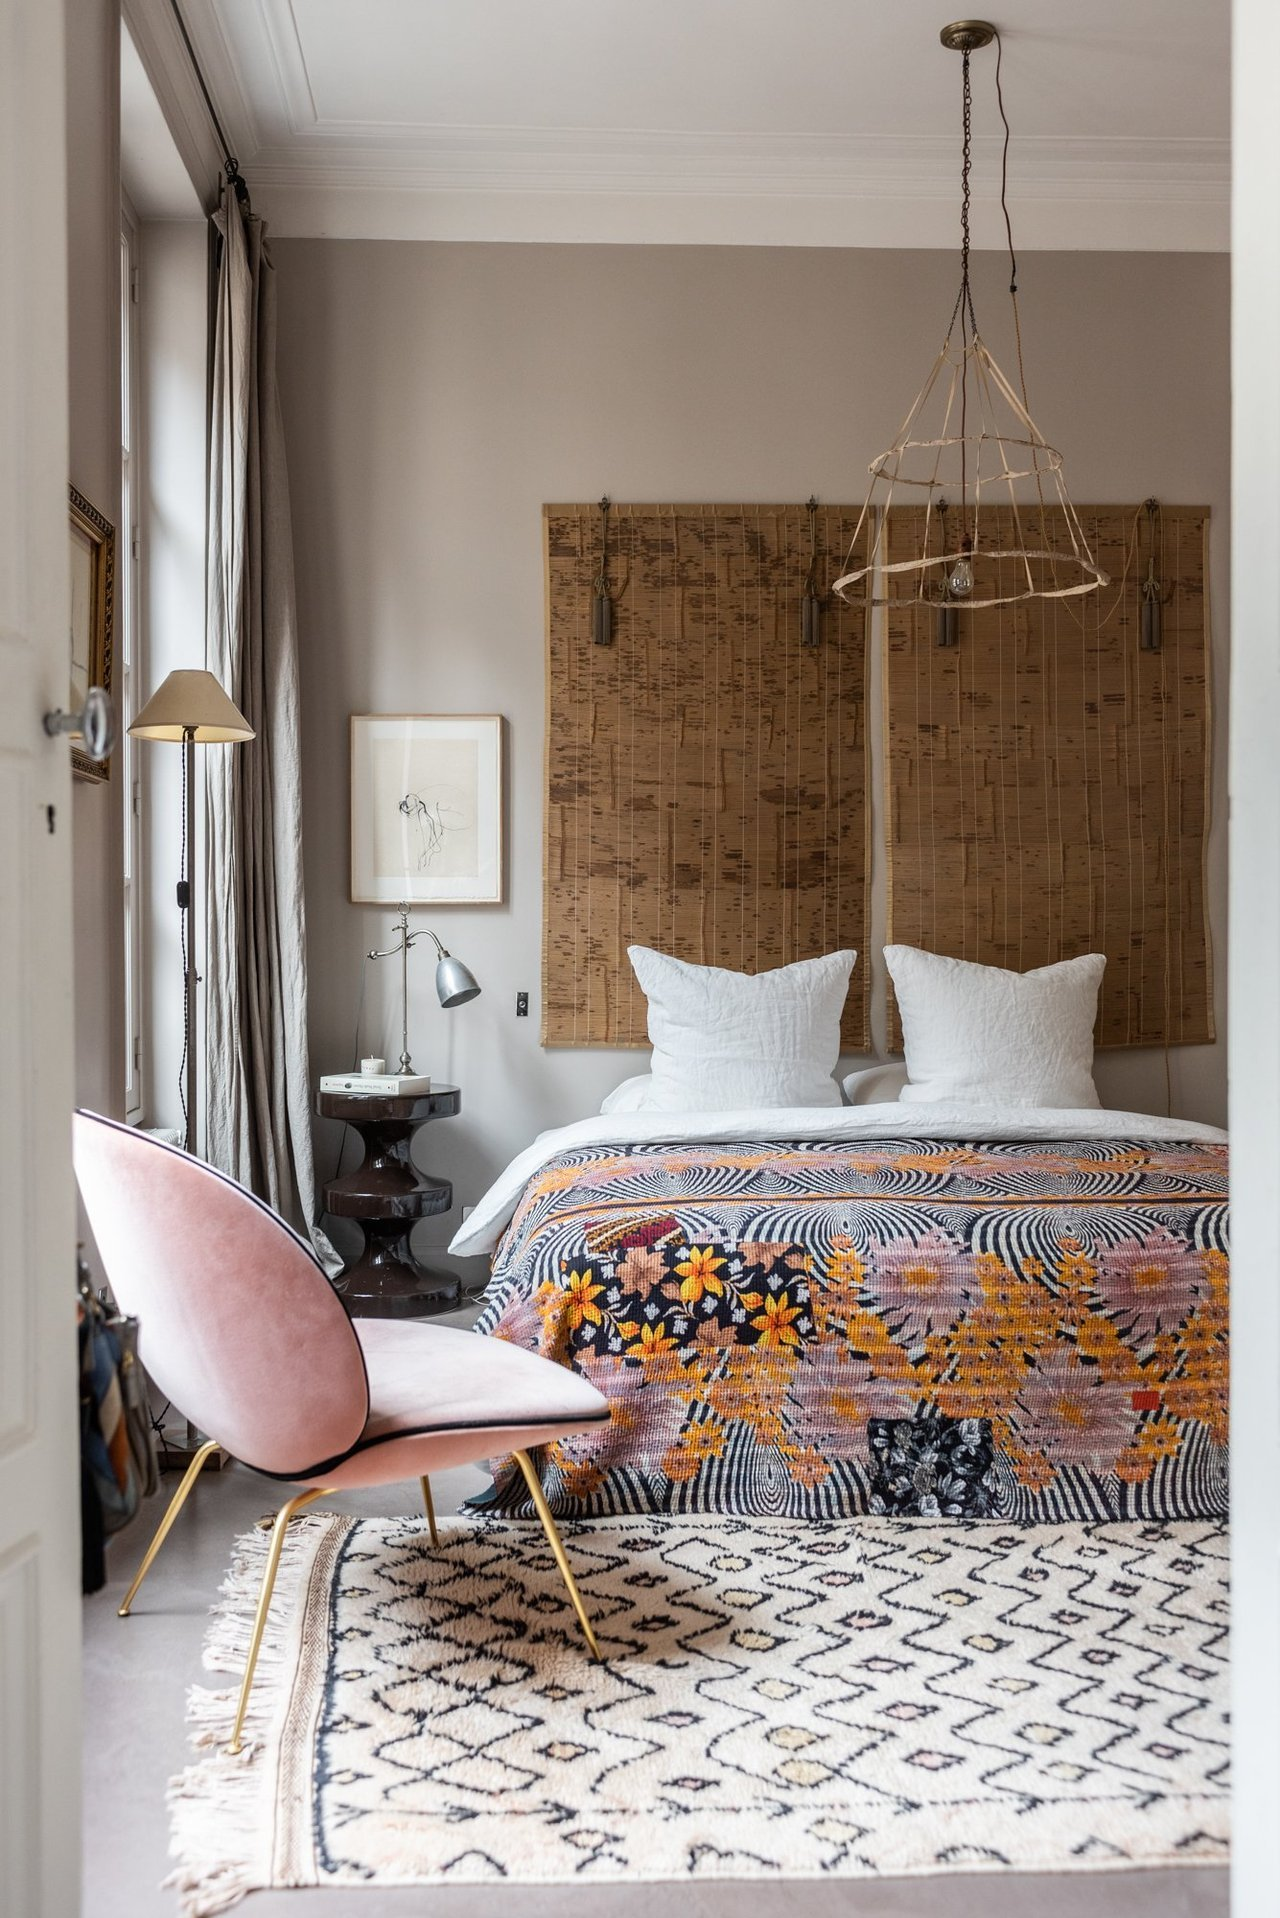 The Nordroom - Creative Headboard and Bedroom Styling Ideas (photography by Valerio Geraci)